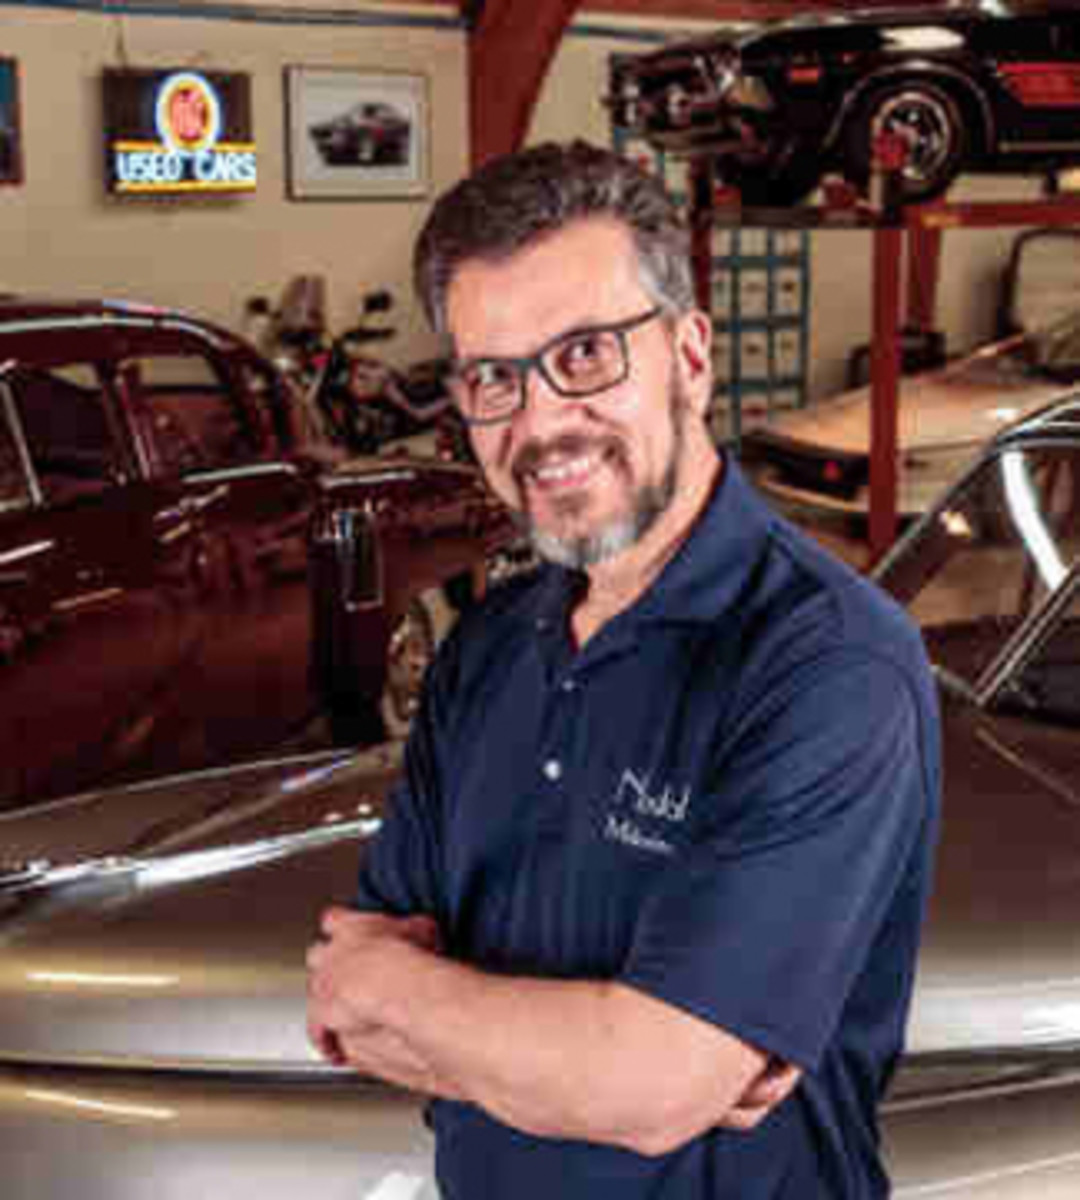 Mark Lieberman is the president of Nostalgic Motoring, which deals in classic and collectible automobiles, and he has seven patents to his credit. In 1991, he purchased the first of the five Tucker automobiles he has owned. Through his business, he is actively involved in the restoration and preservation of Tucker automobiles. Mark continues to serve the Tucker Automobile Club of America (TACA) as their Technical Adviser and Historian, and he also serves on the AACA Museum's Board of Directors as the Executive Board Representative for TACA. Photo - AACA Museum, Inc.